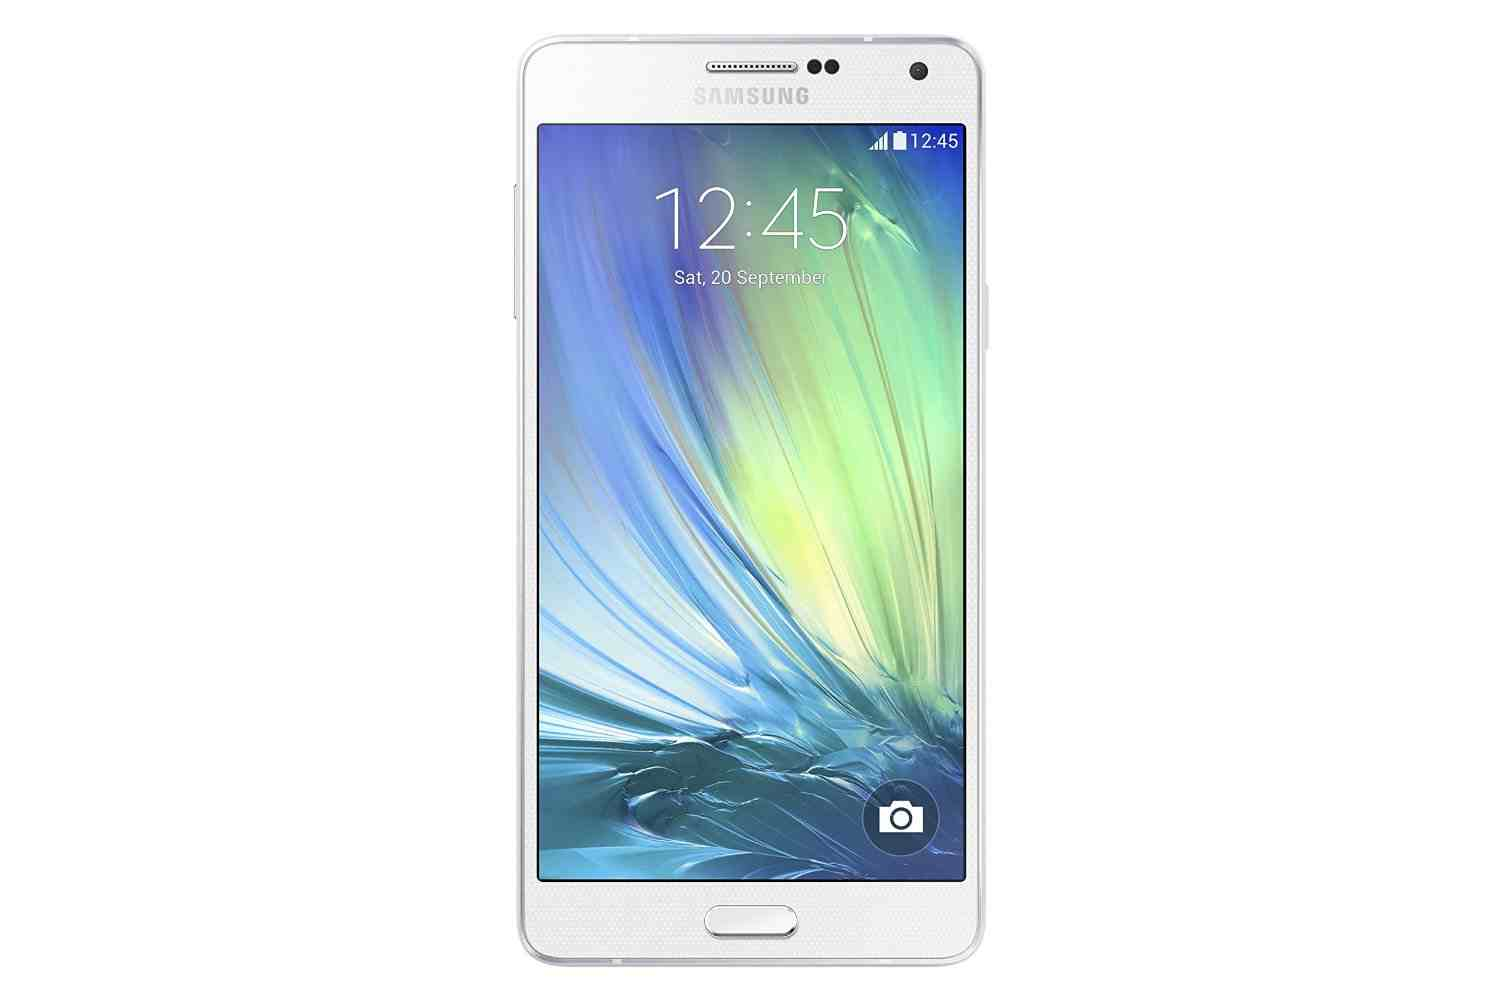 Samsung Galaxy A7 SM-A700FD 16GB White Mobile